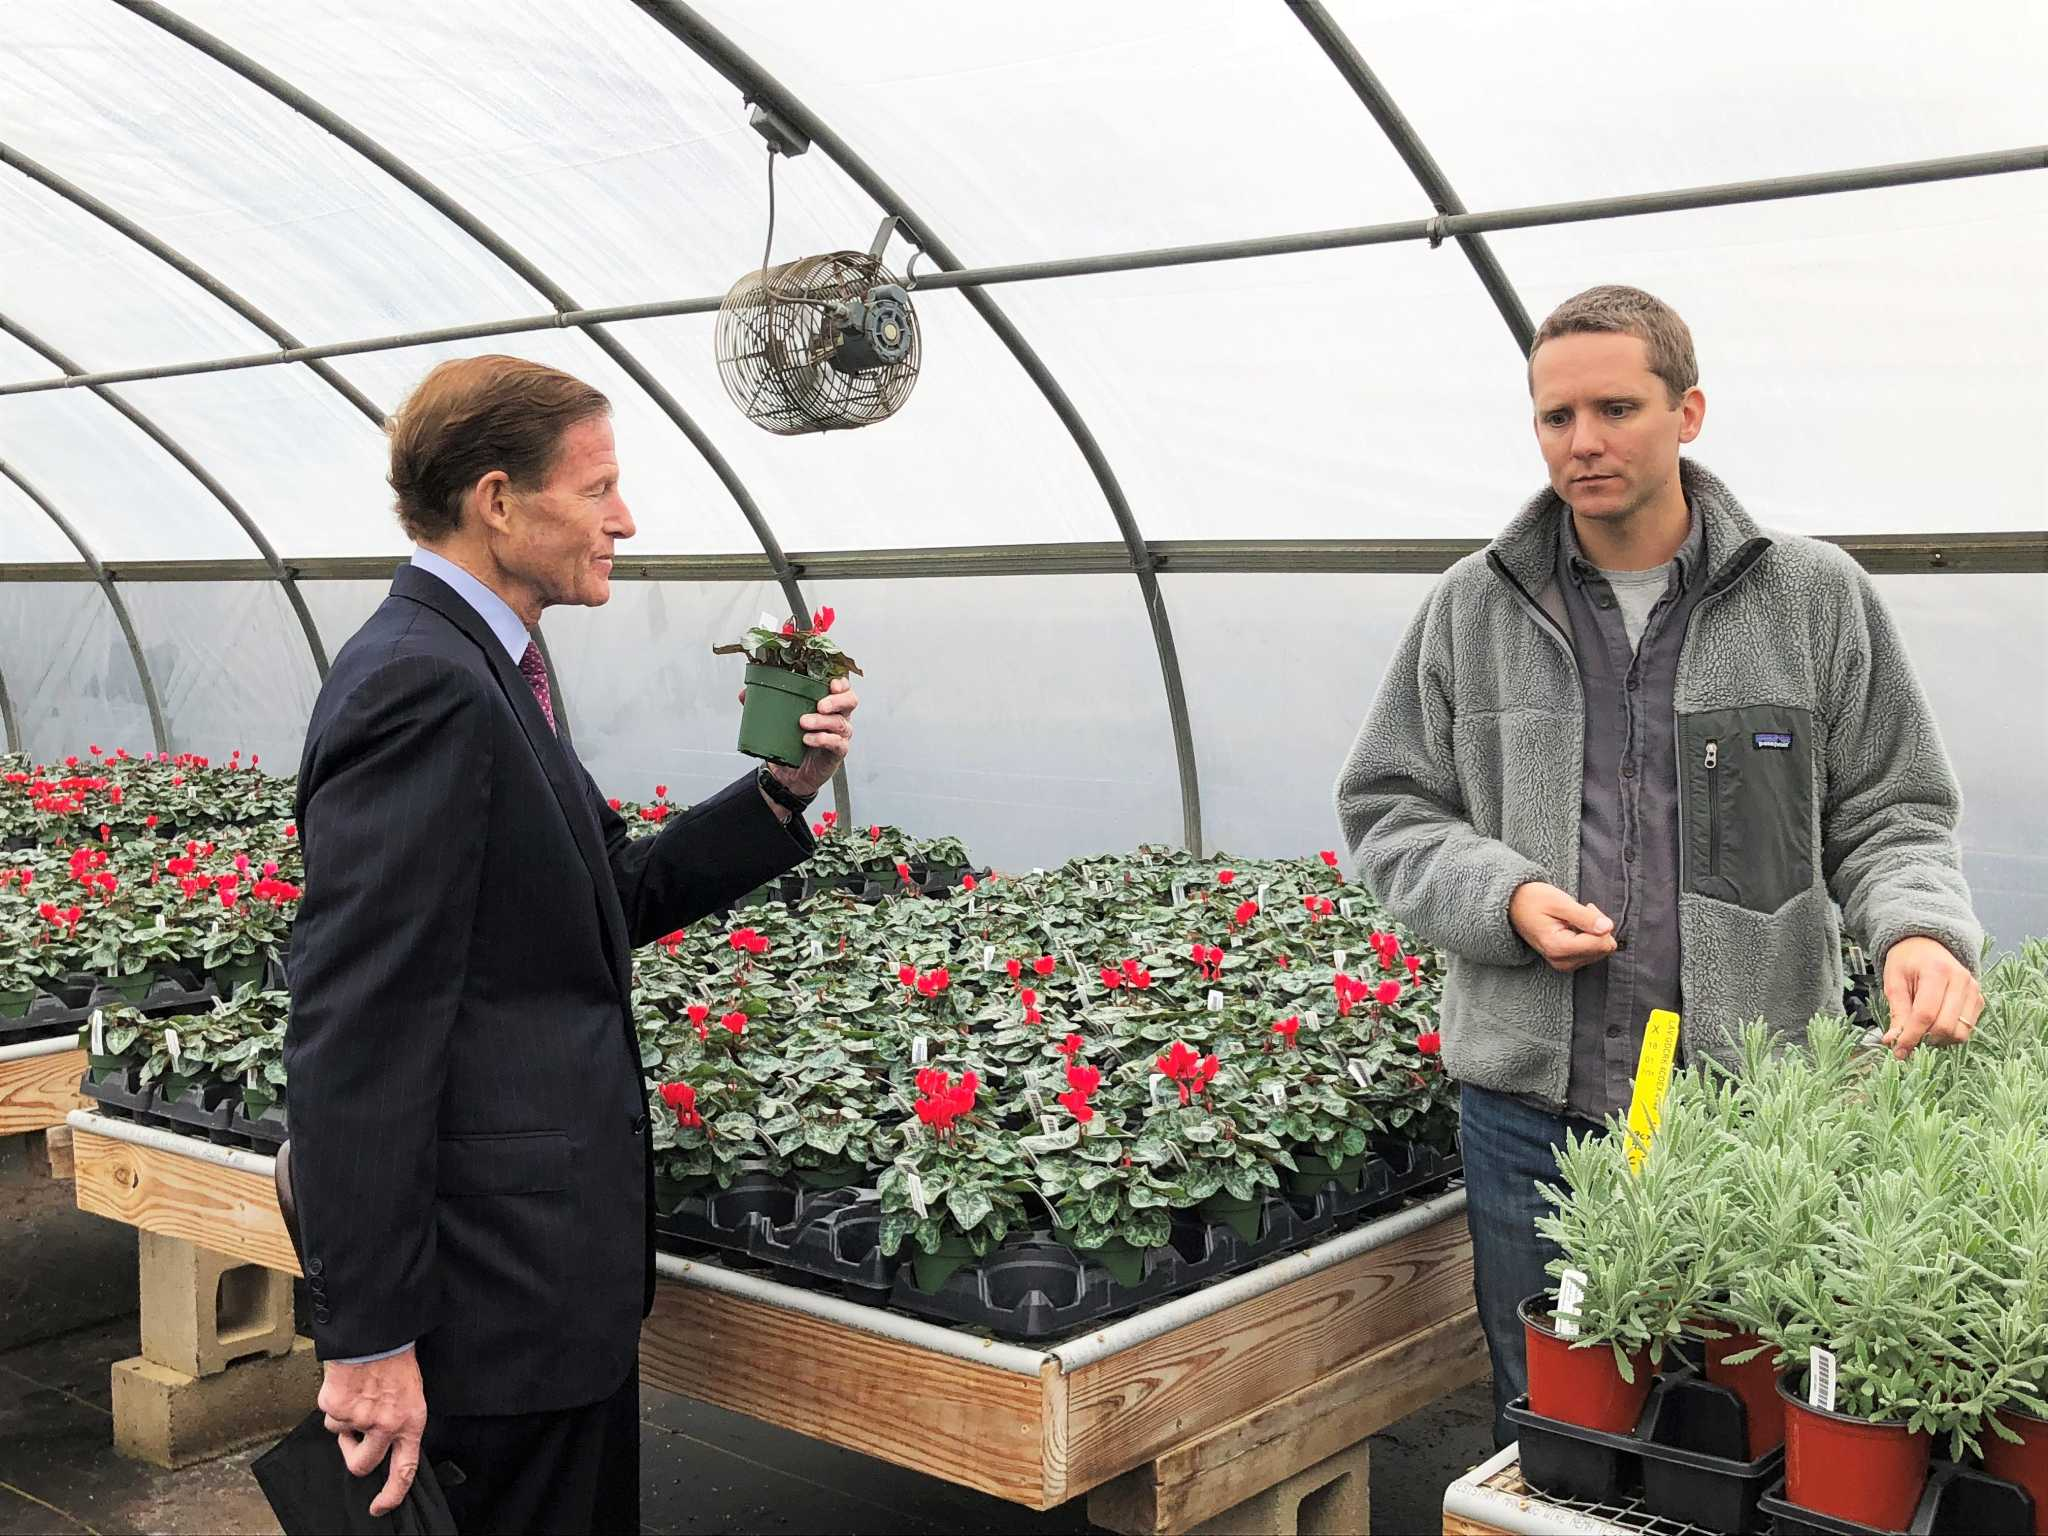 White Flower Farm Finds Success With Solar Panel Array The